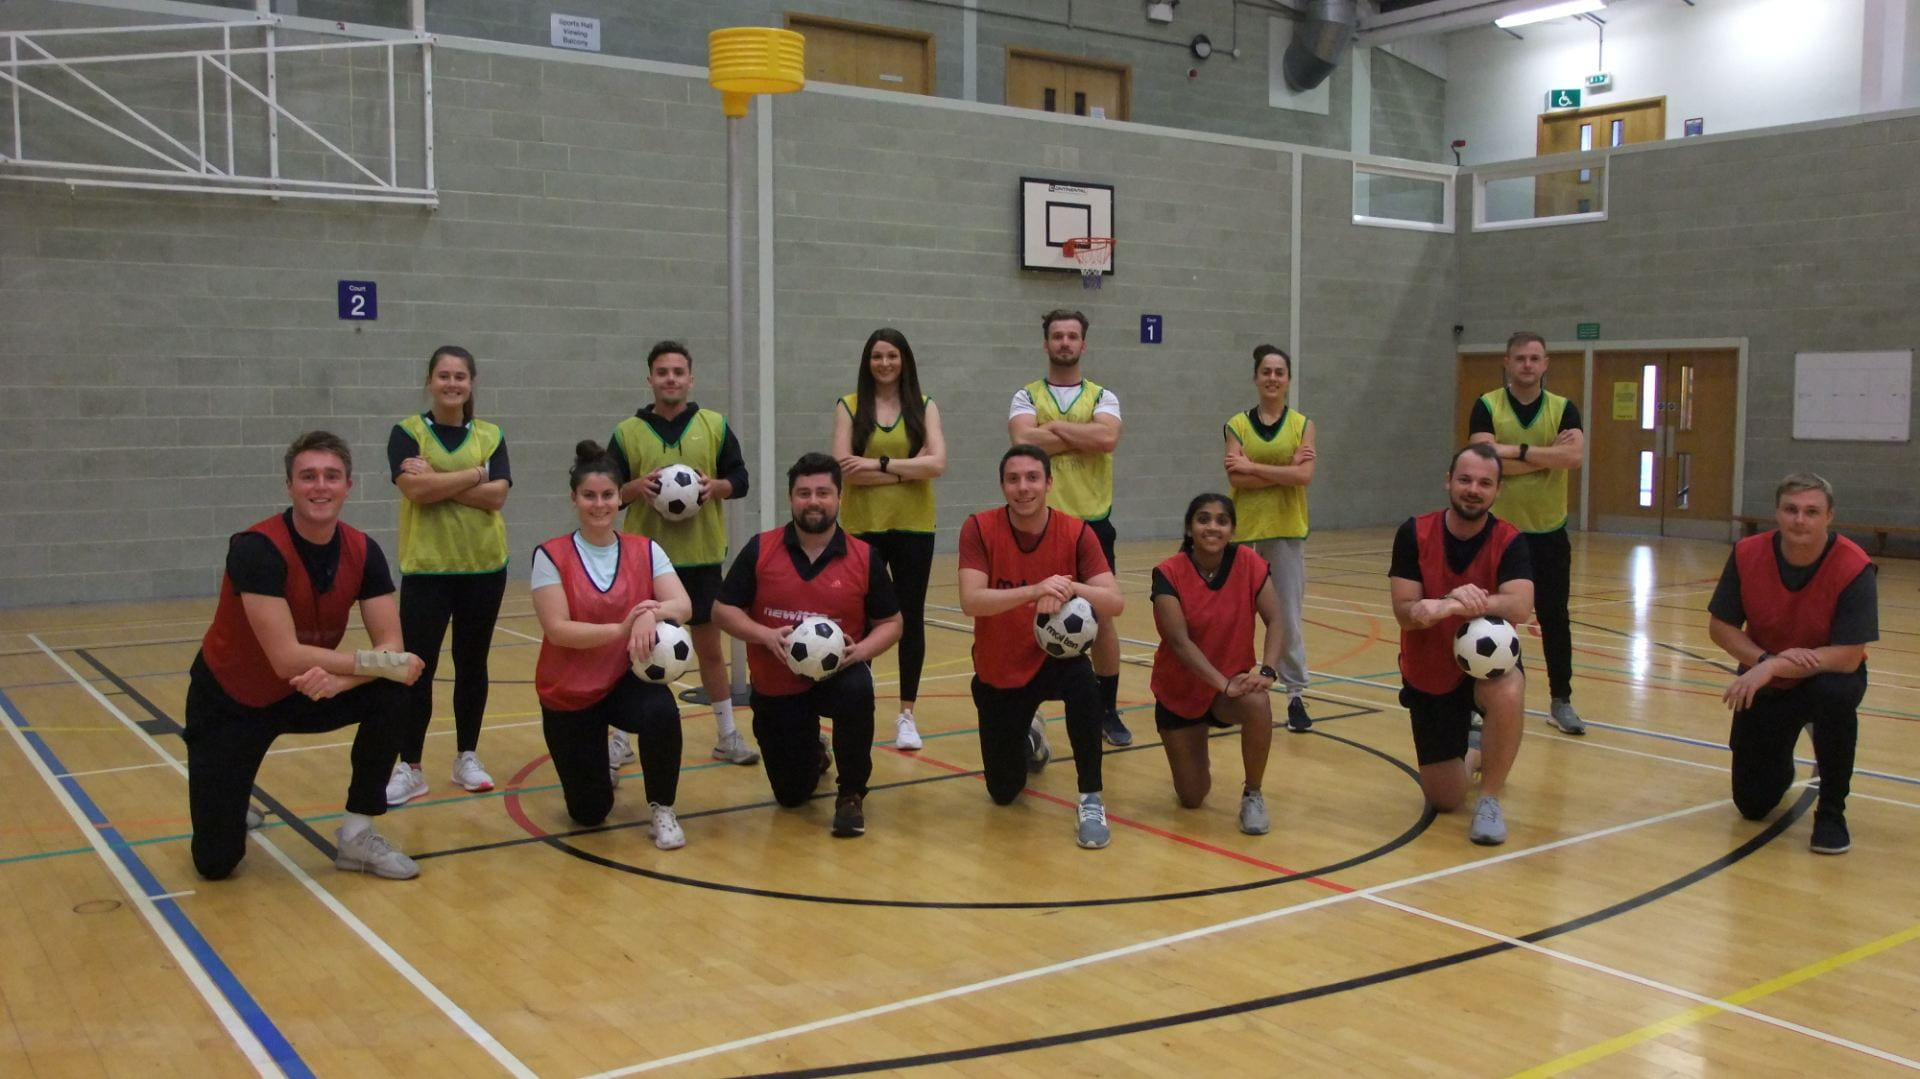 group photo of the students in the sports hall